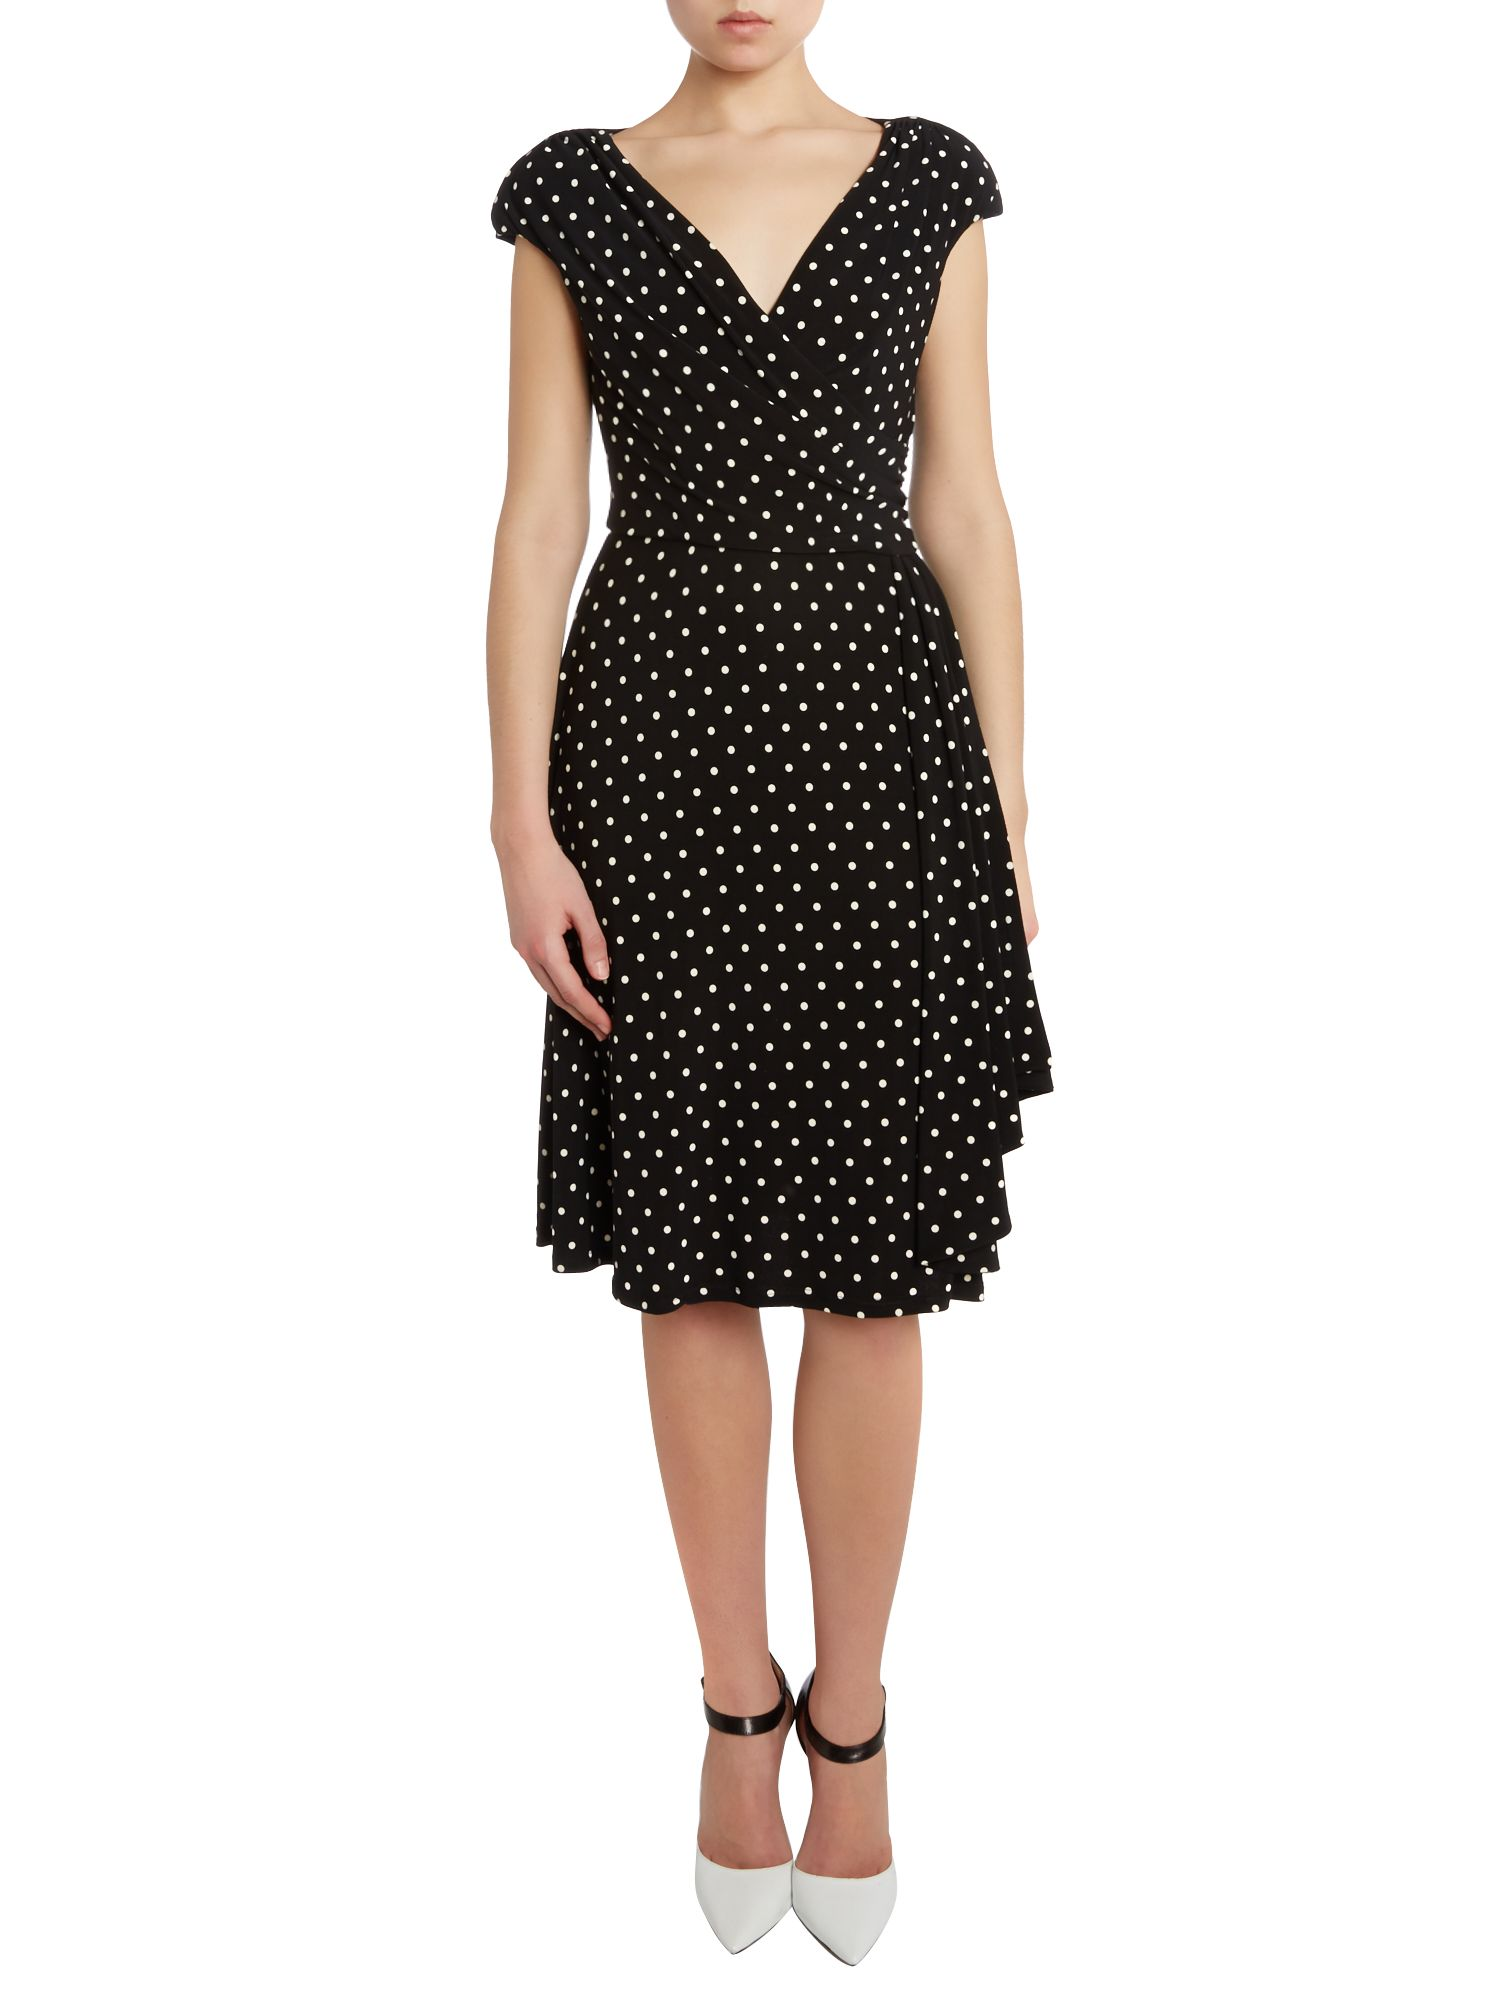 Polka dot cap sleeved dress with ruffle